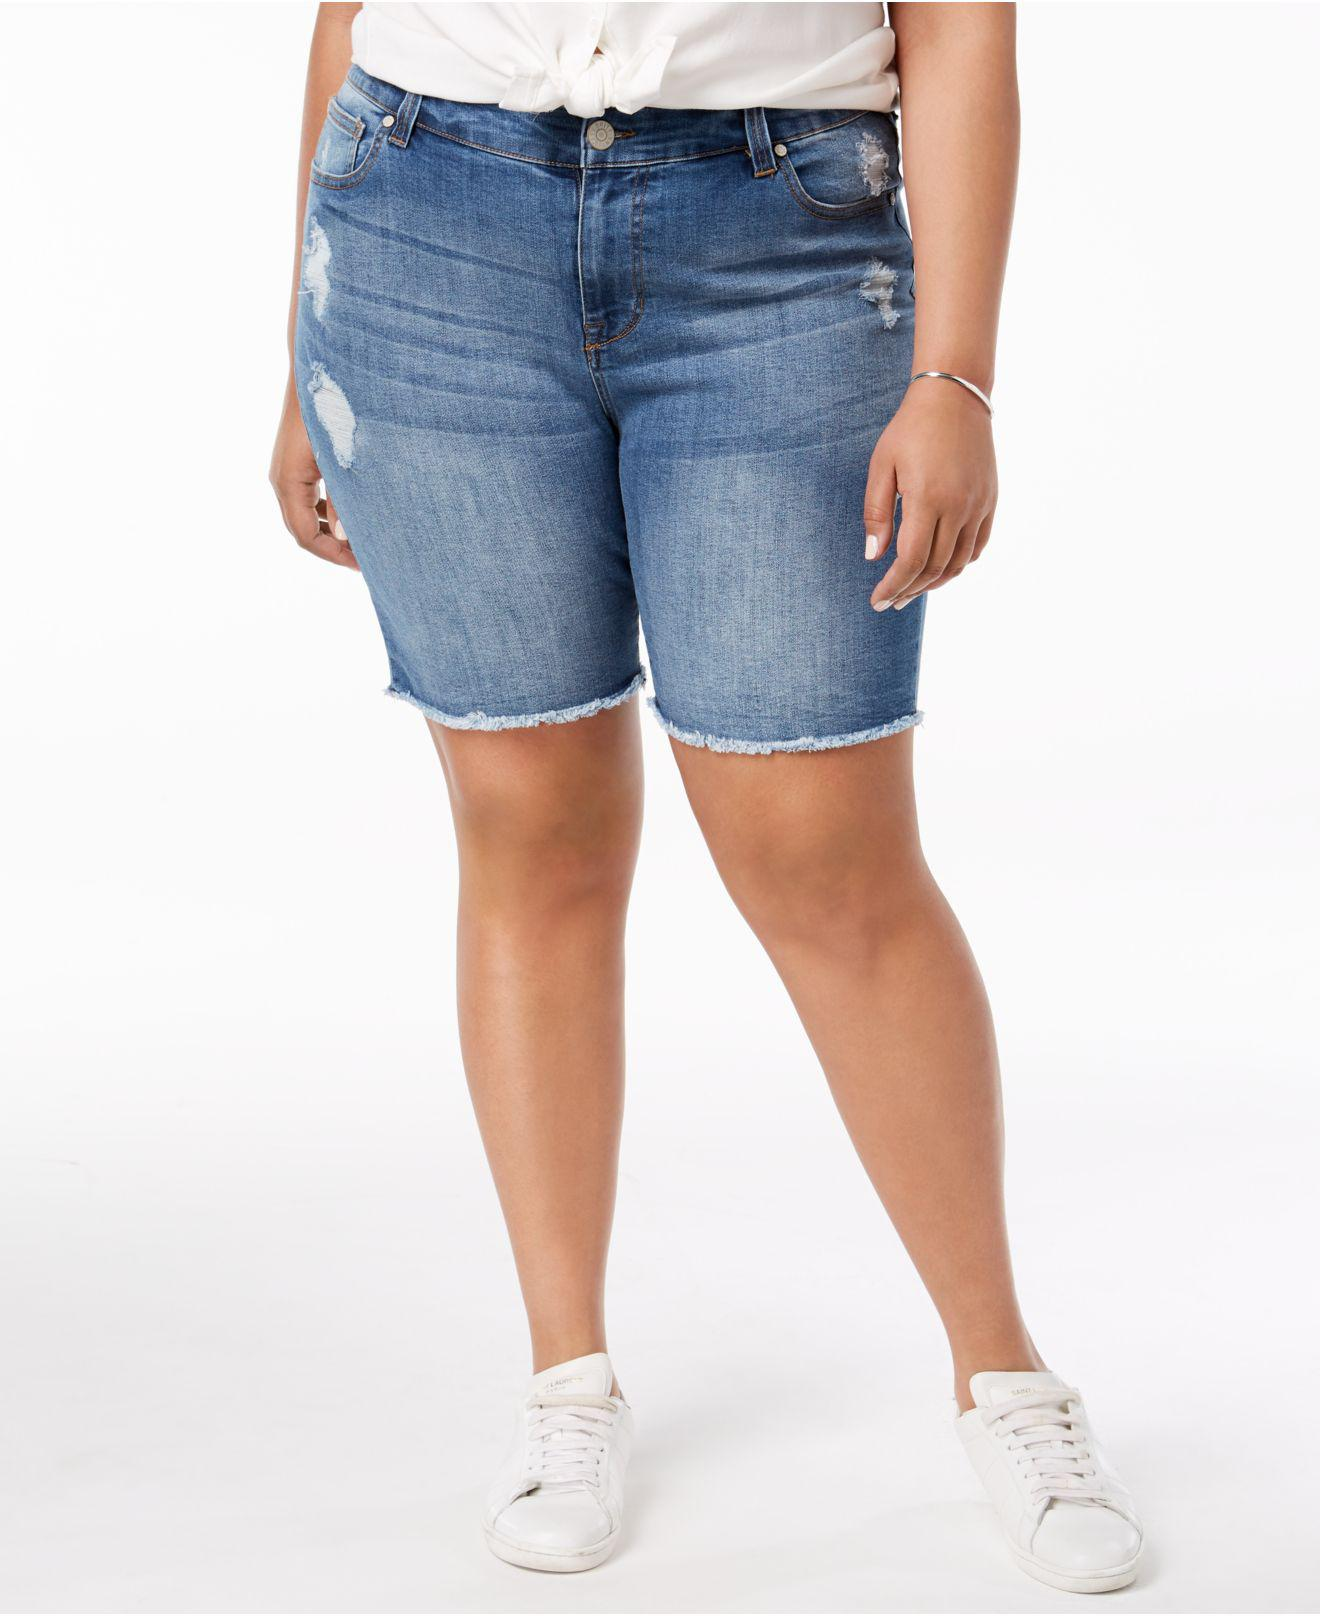 28b56c2727 Lyst - Celebrity Pink Plus Size Distressed Raw-hem Denim Shorts in Blue